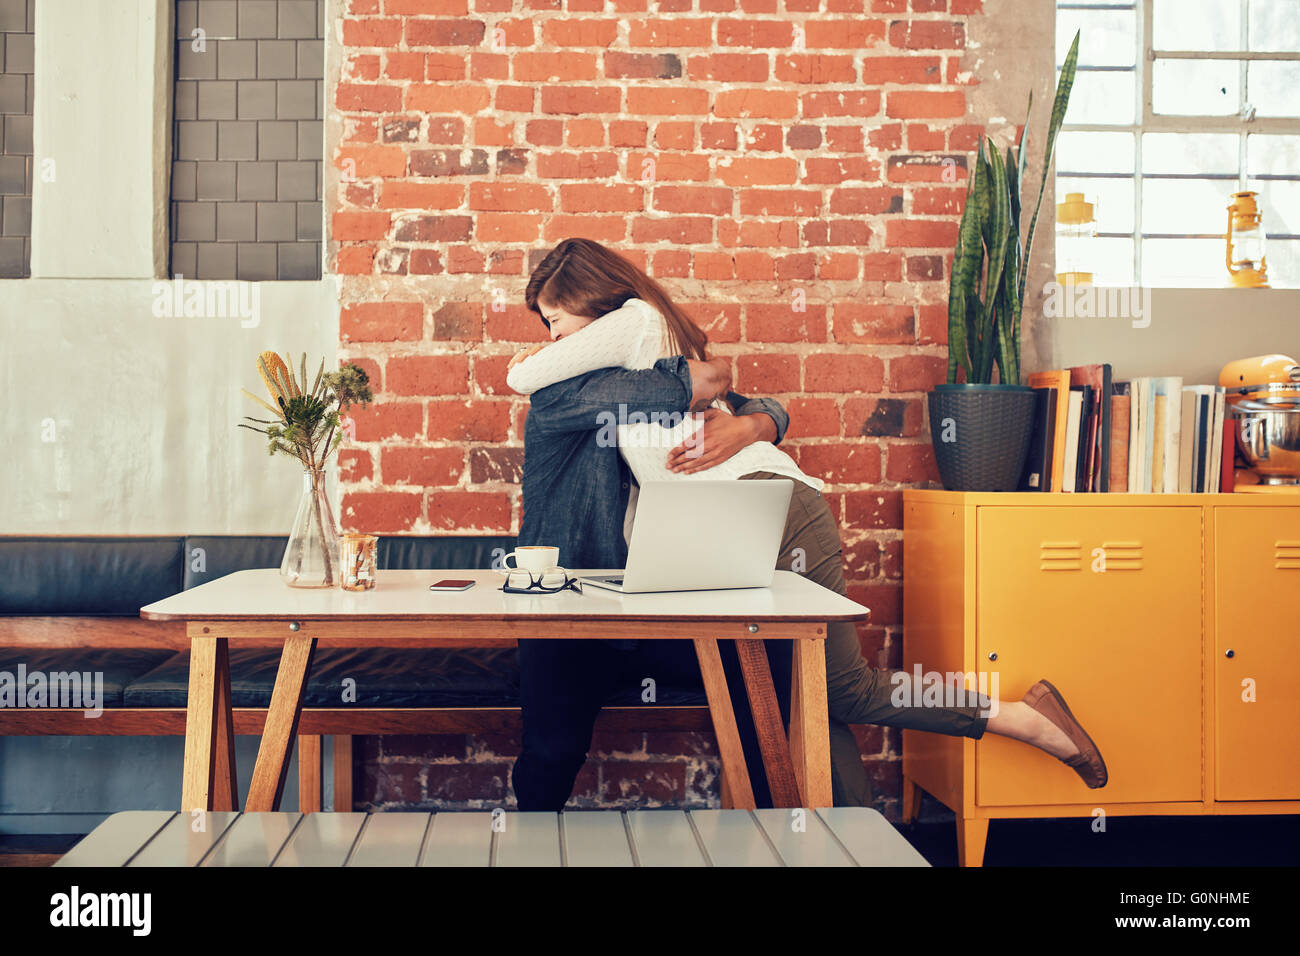 Portrait of man and woman embracing each other at a cafe, couple meeting in a coffee shop. - Stock Image